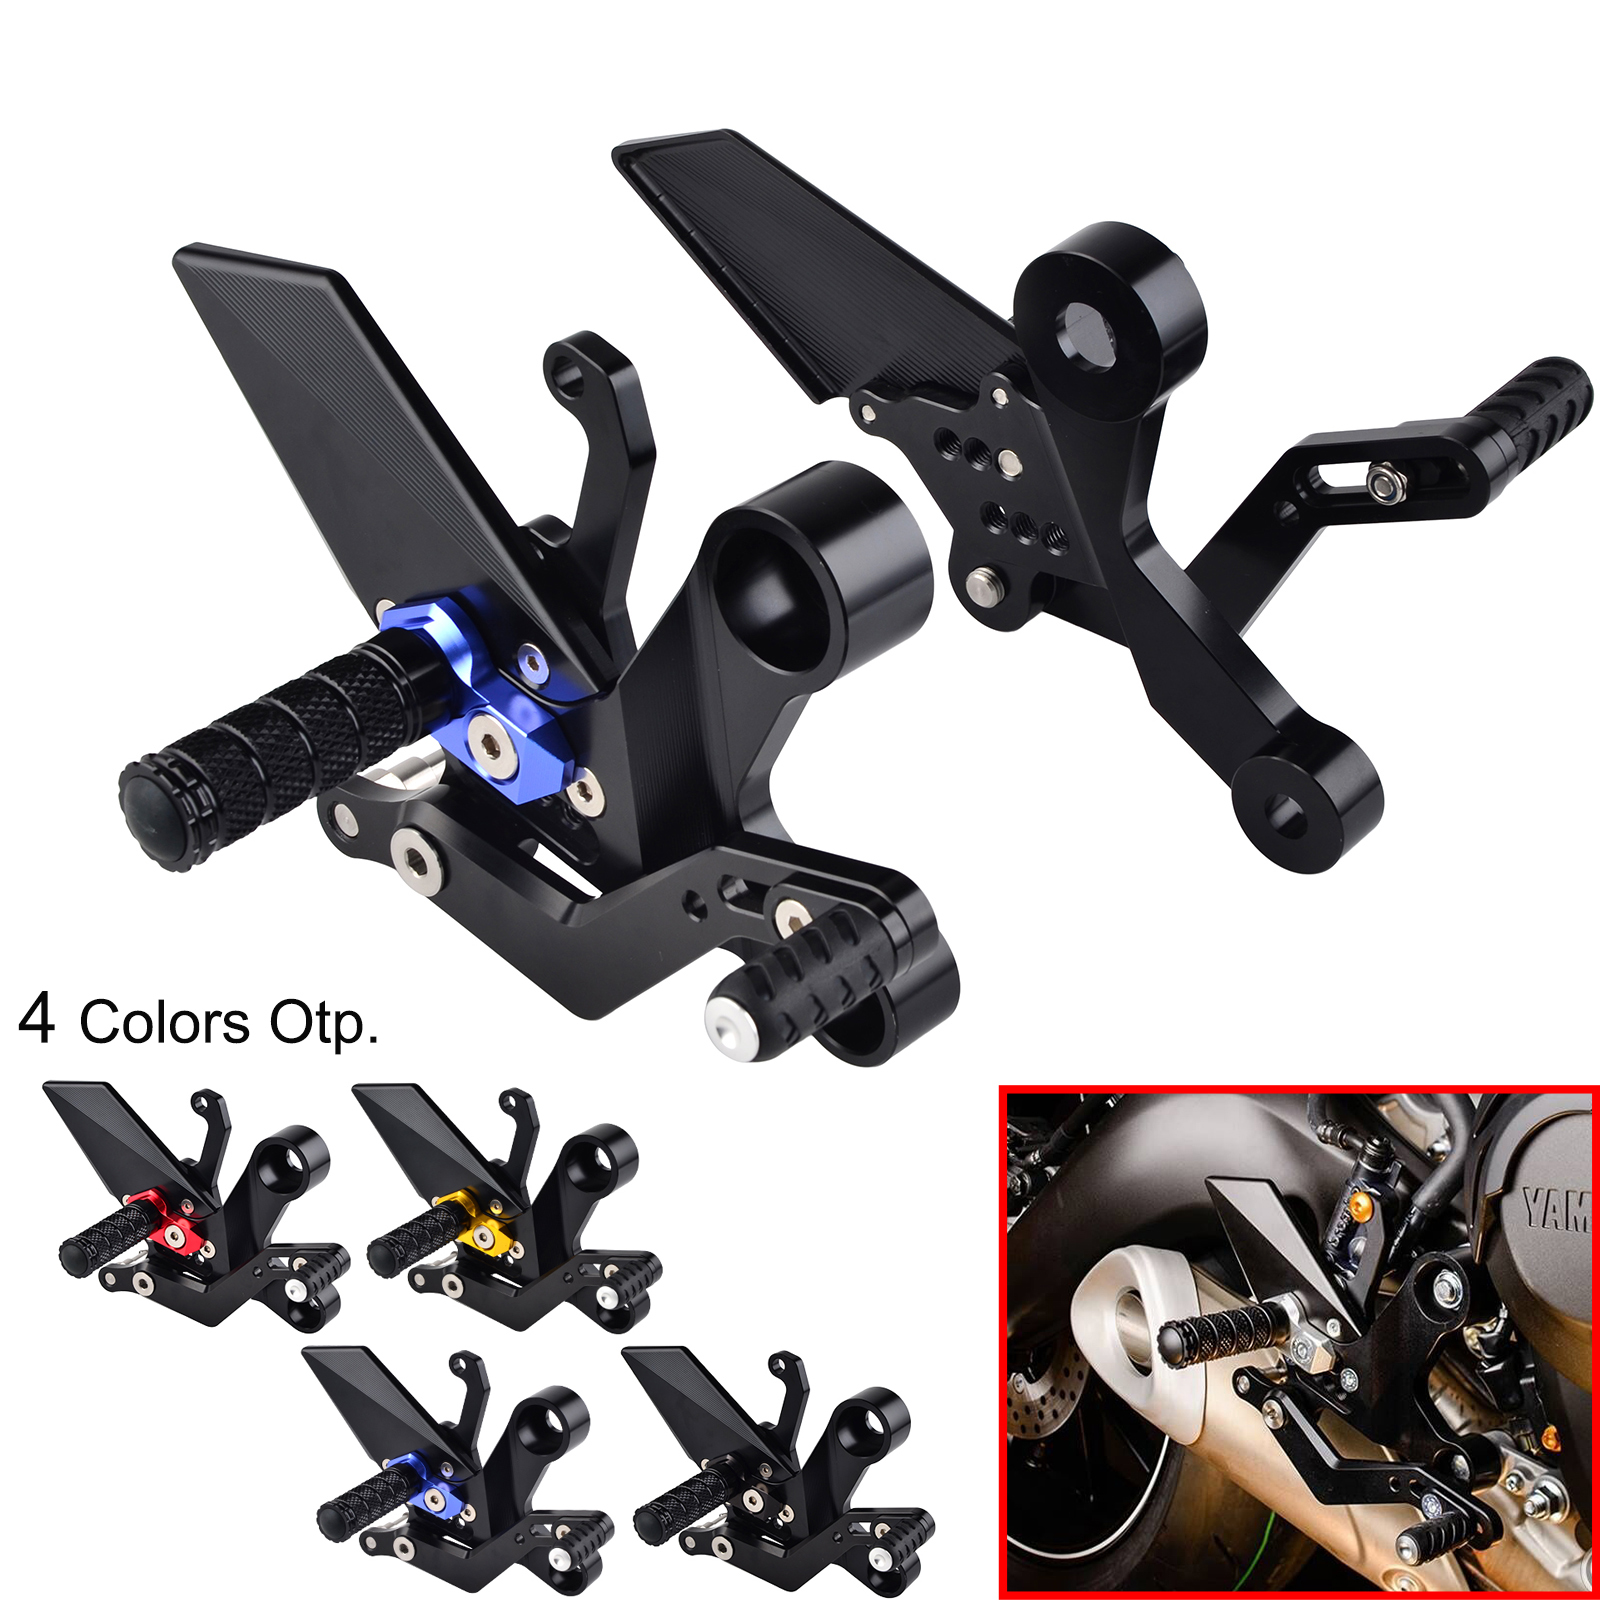 Motorcycle Adjustable Rearset Footrest Foot Pegs Pedal Rear Sets For Yamaha MT 09 MT09 MT 09 2013 2014 2015 2016 2017